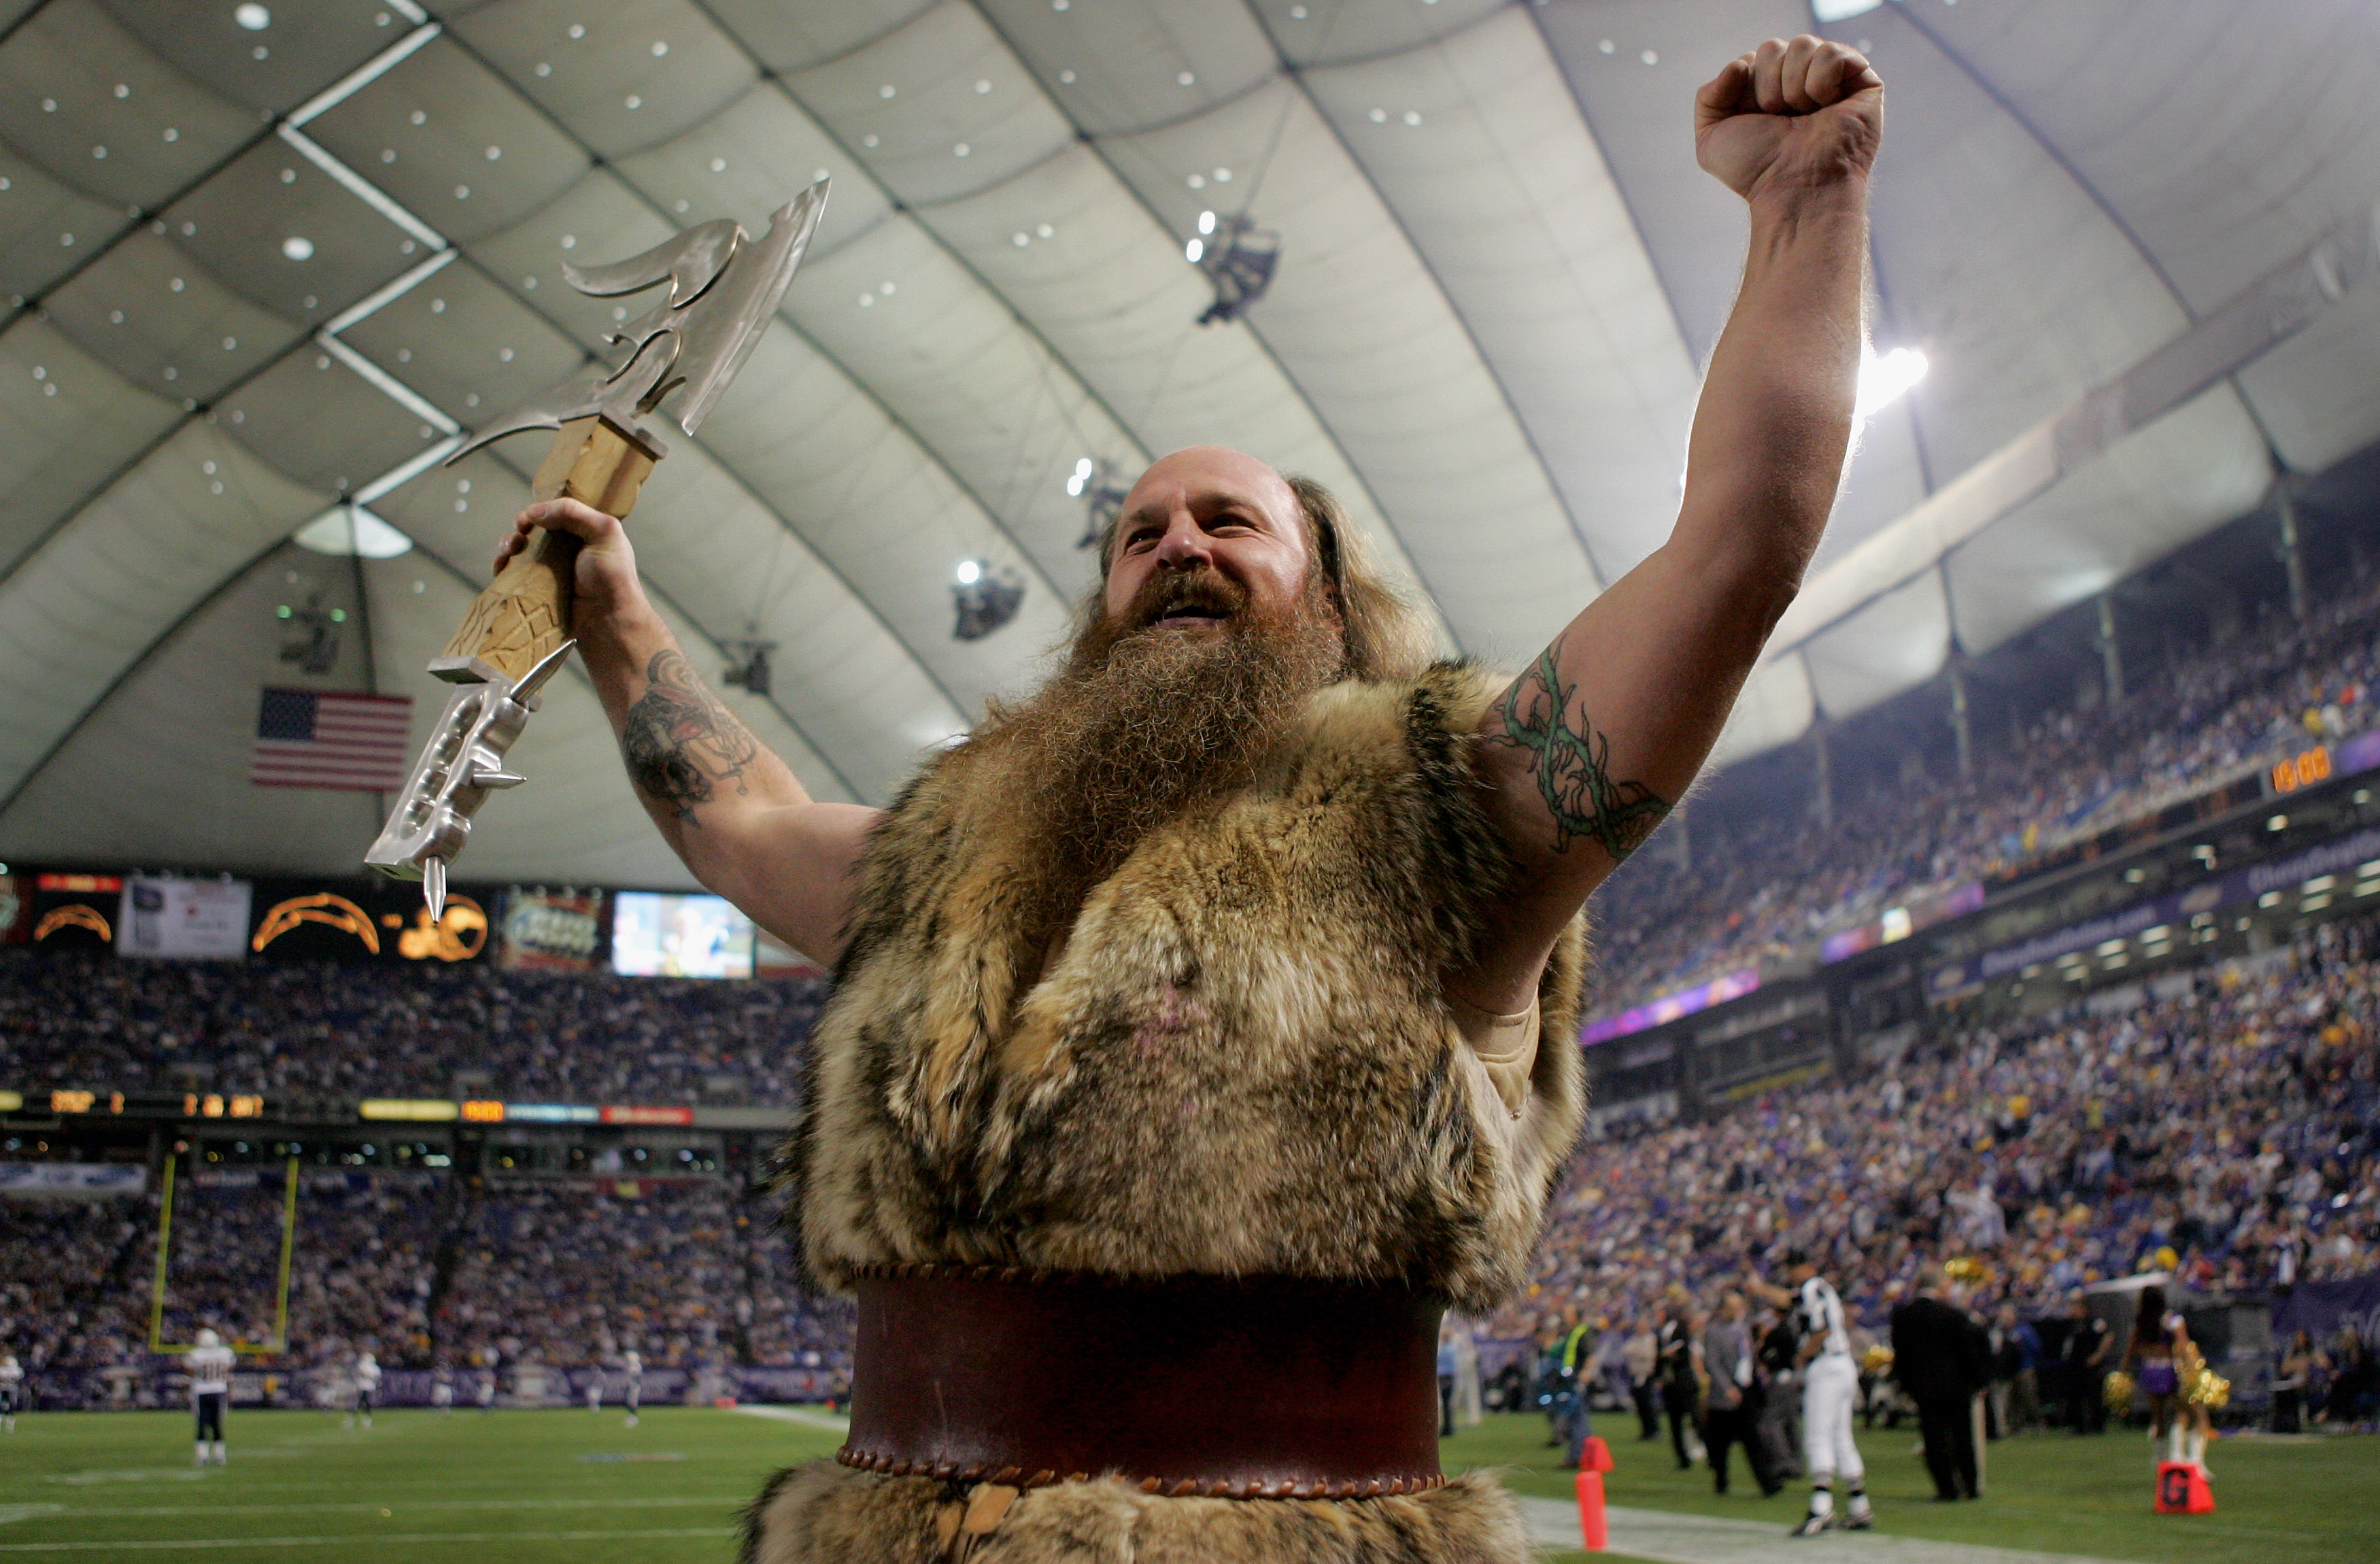 MINNEAPOLIS, MN - NOVEMBER 04: 'Ragnar' the Minnesota Vikings mascot portrayed by Joe Juranitch, entices the home crowd against the San Diego Chargers at the Hubert H. Humphrey Metrodome on November 4, 2007 in Minneapolis, Minnesota. (Photo by Doug Pensin